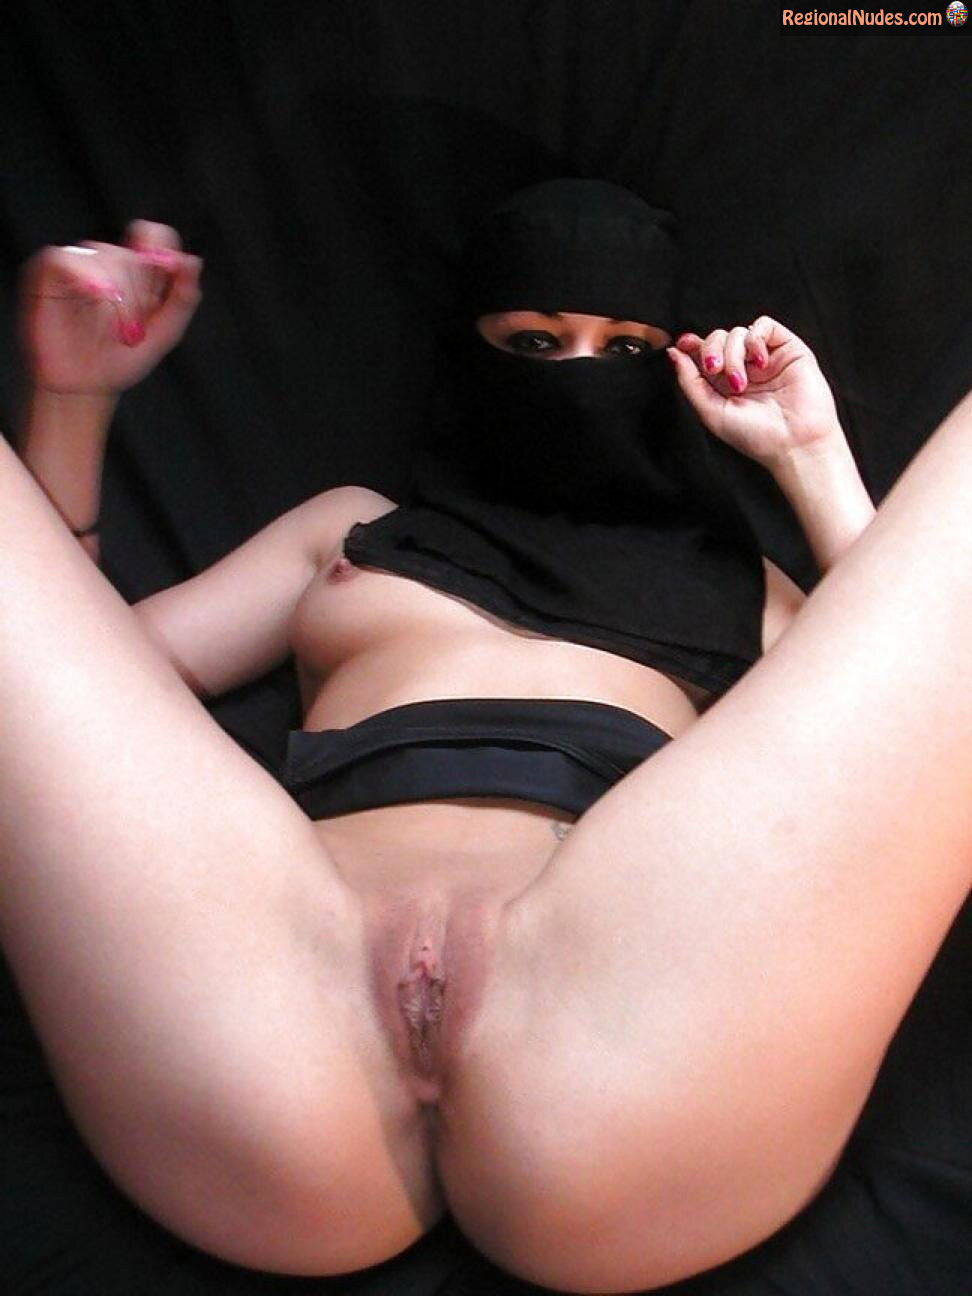 Nude arab woman in burka